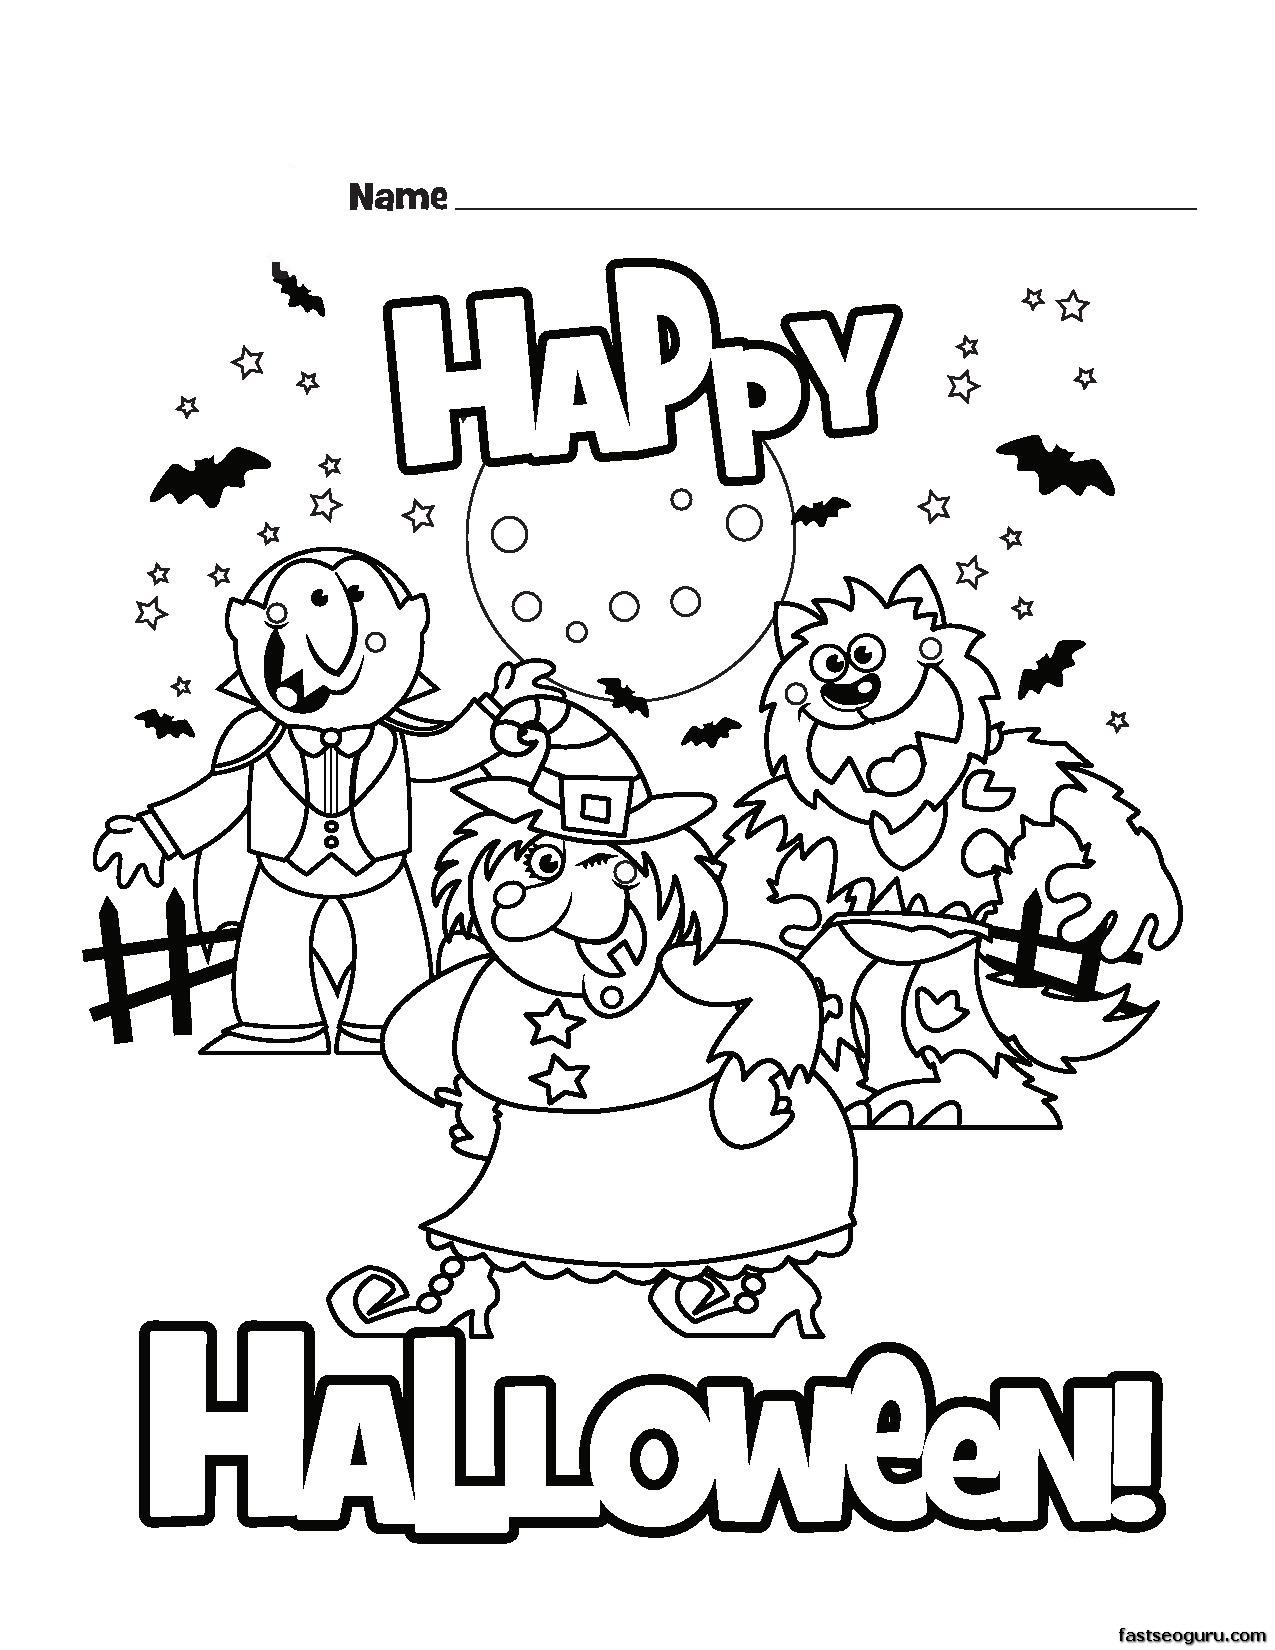 Halloween Free Coloring Pages Printable  Best of Free Halloween Coloring Pages Bestofcoloring